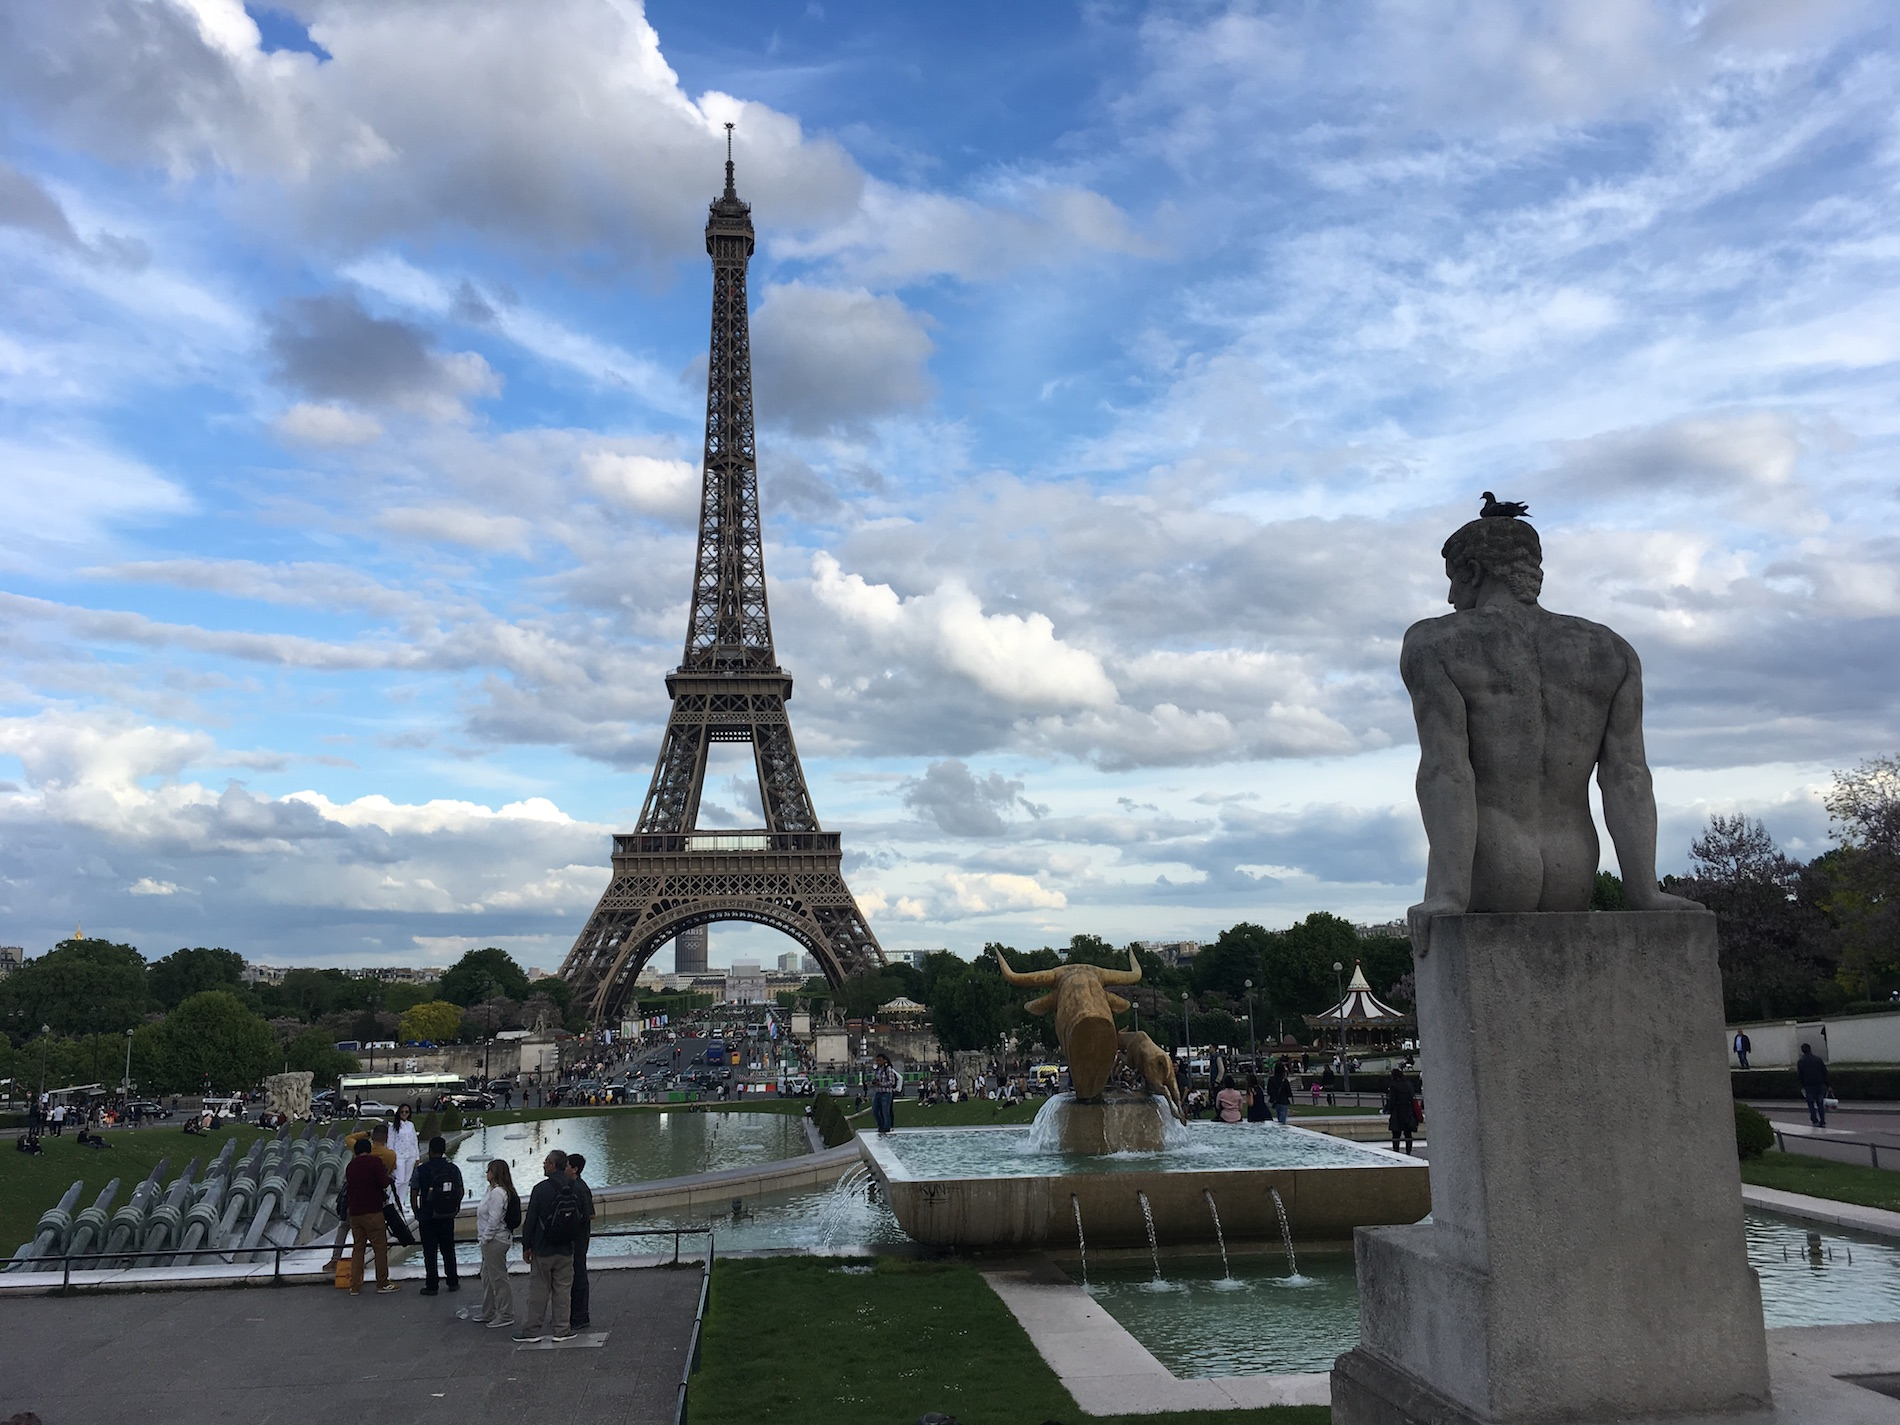 The Eiffel tower and a statue of a naked fellow, photo by Hoverbear